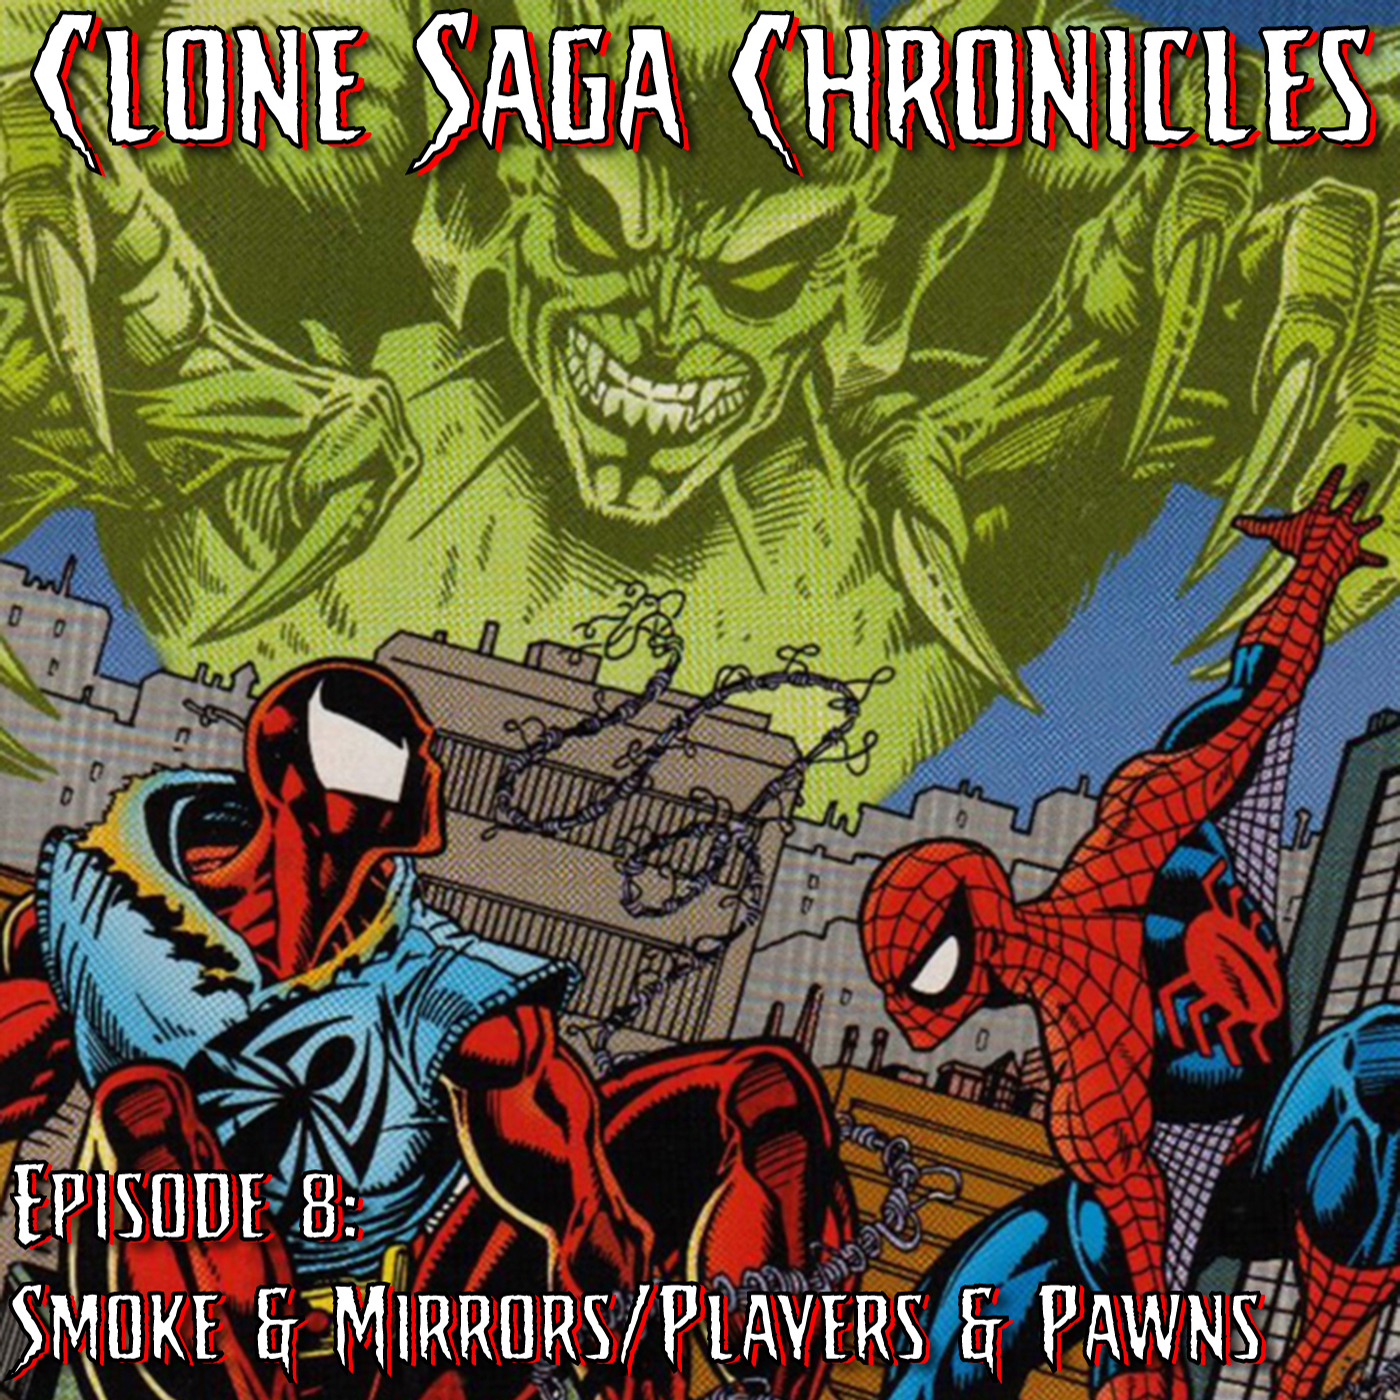 CSC Episode 8: Smoke & Mirrors/Players & Pawns (Cover Date: Feb/Mar 1995)